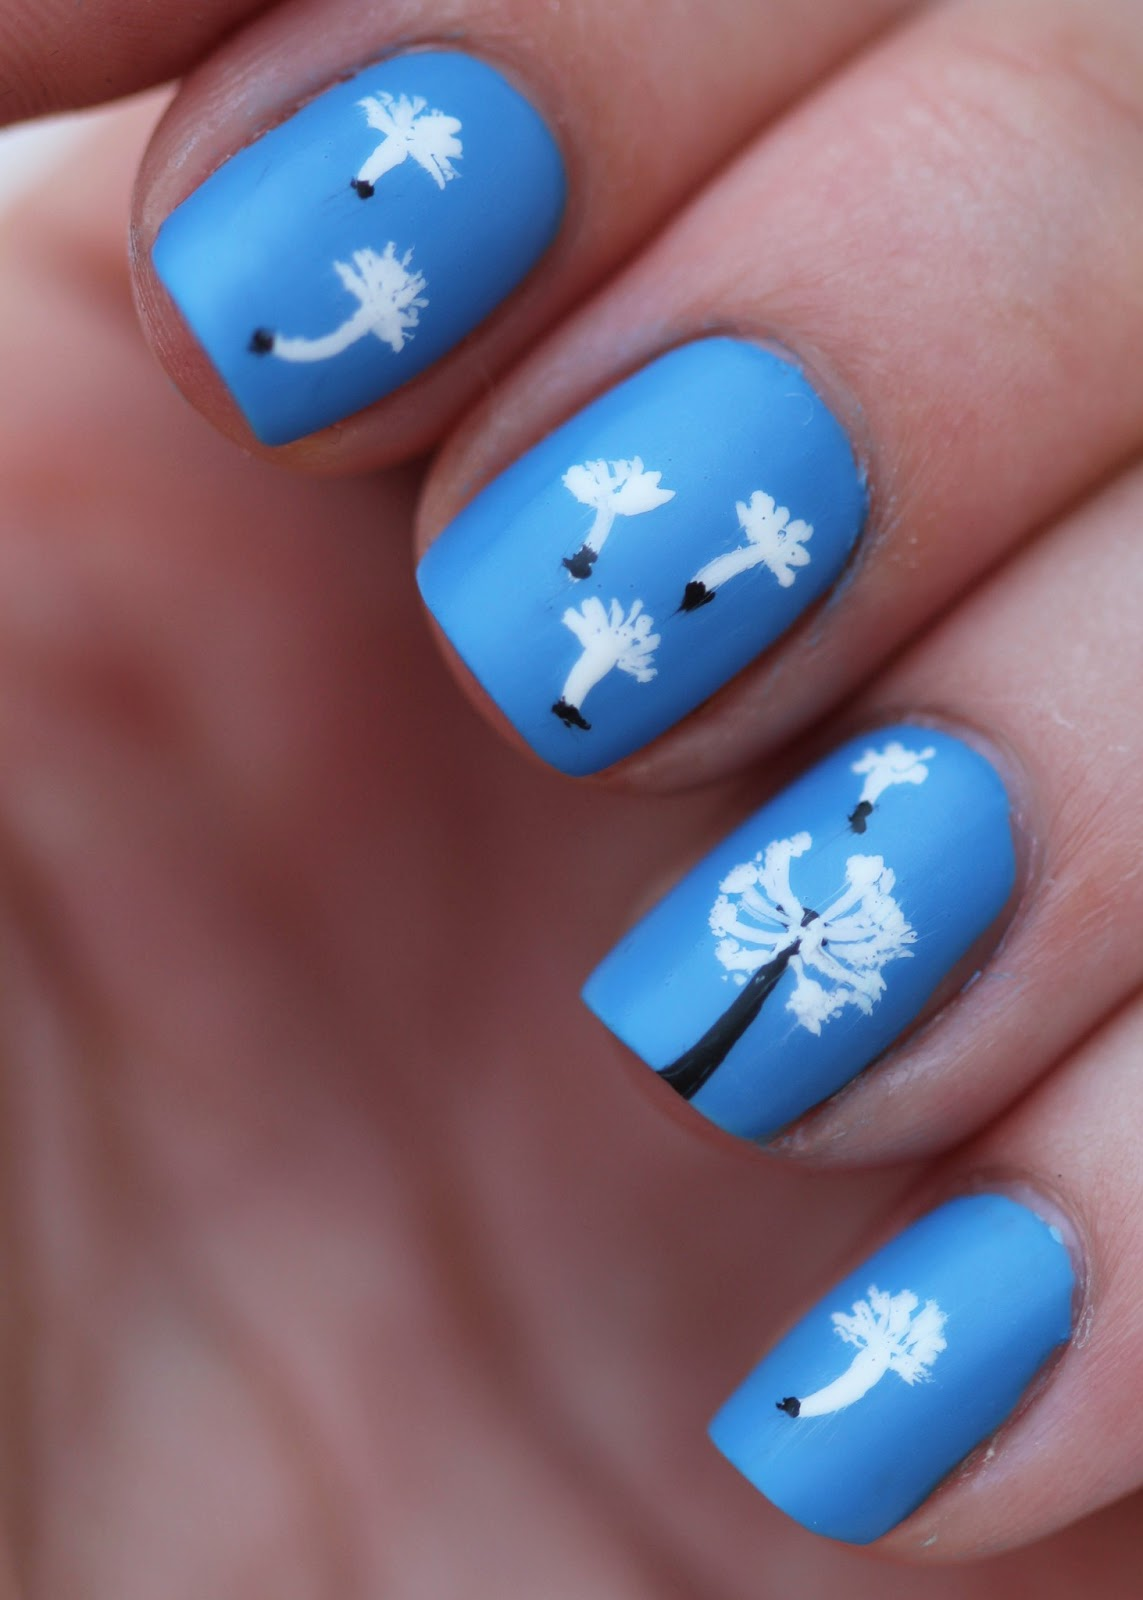 Fundamentally Flawless: Manicure Monday: Dandelion Nail